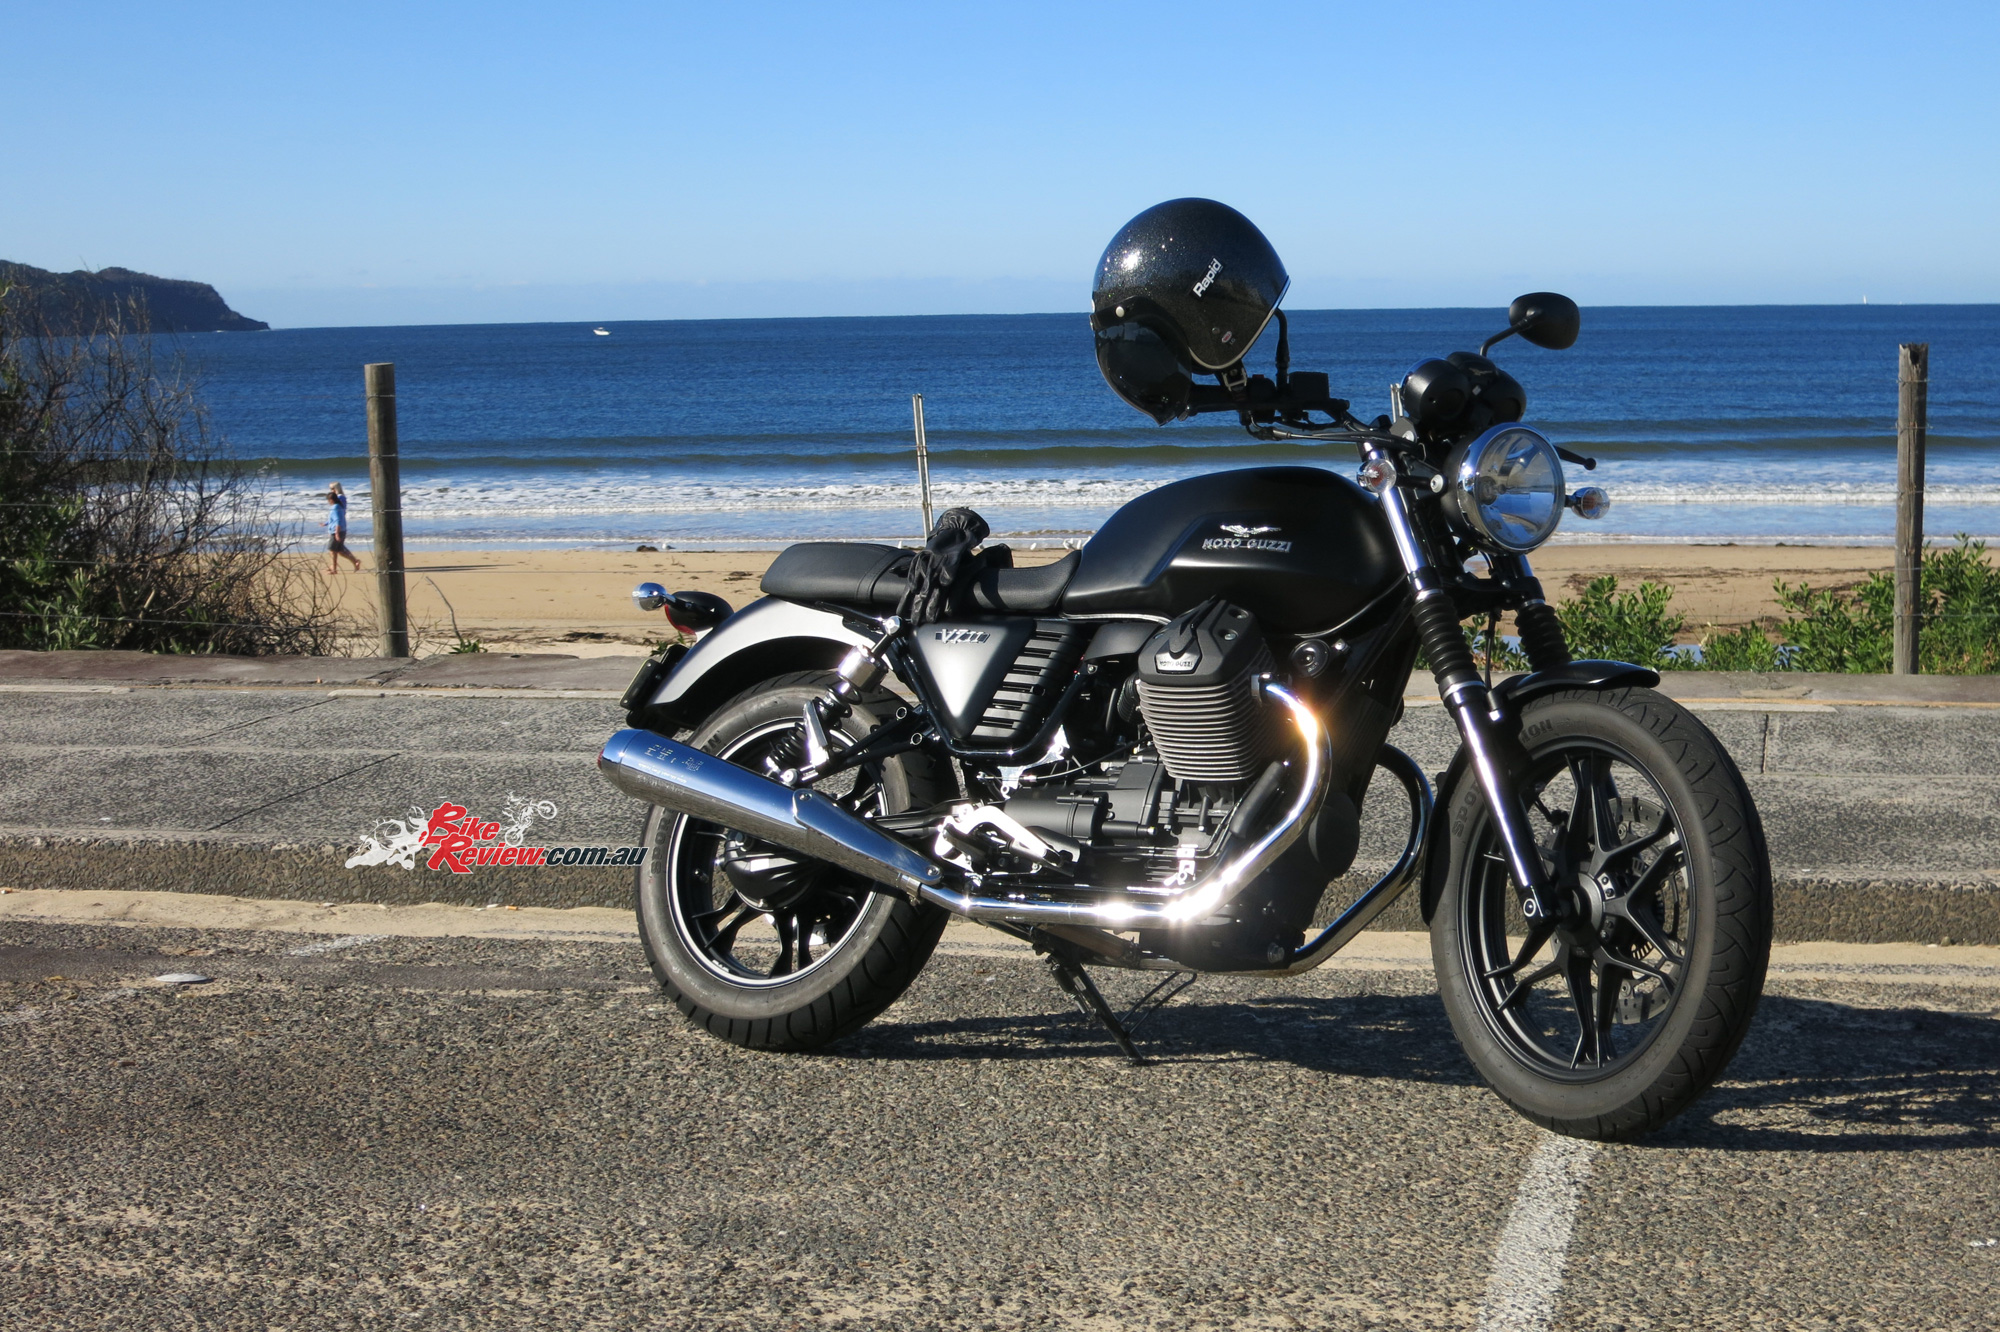 Review 2015 Moto Guzzi V7 Ii Stone Bike Review